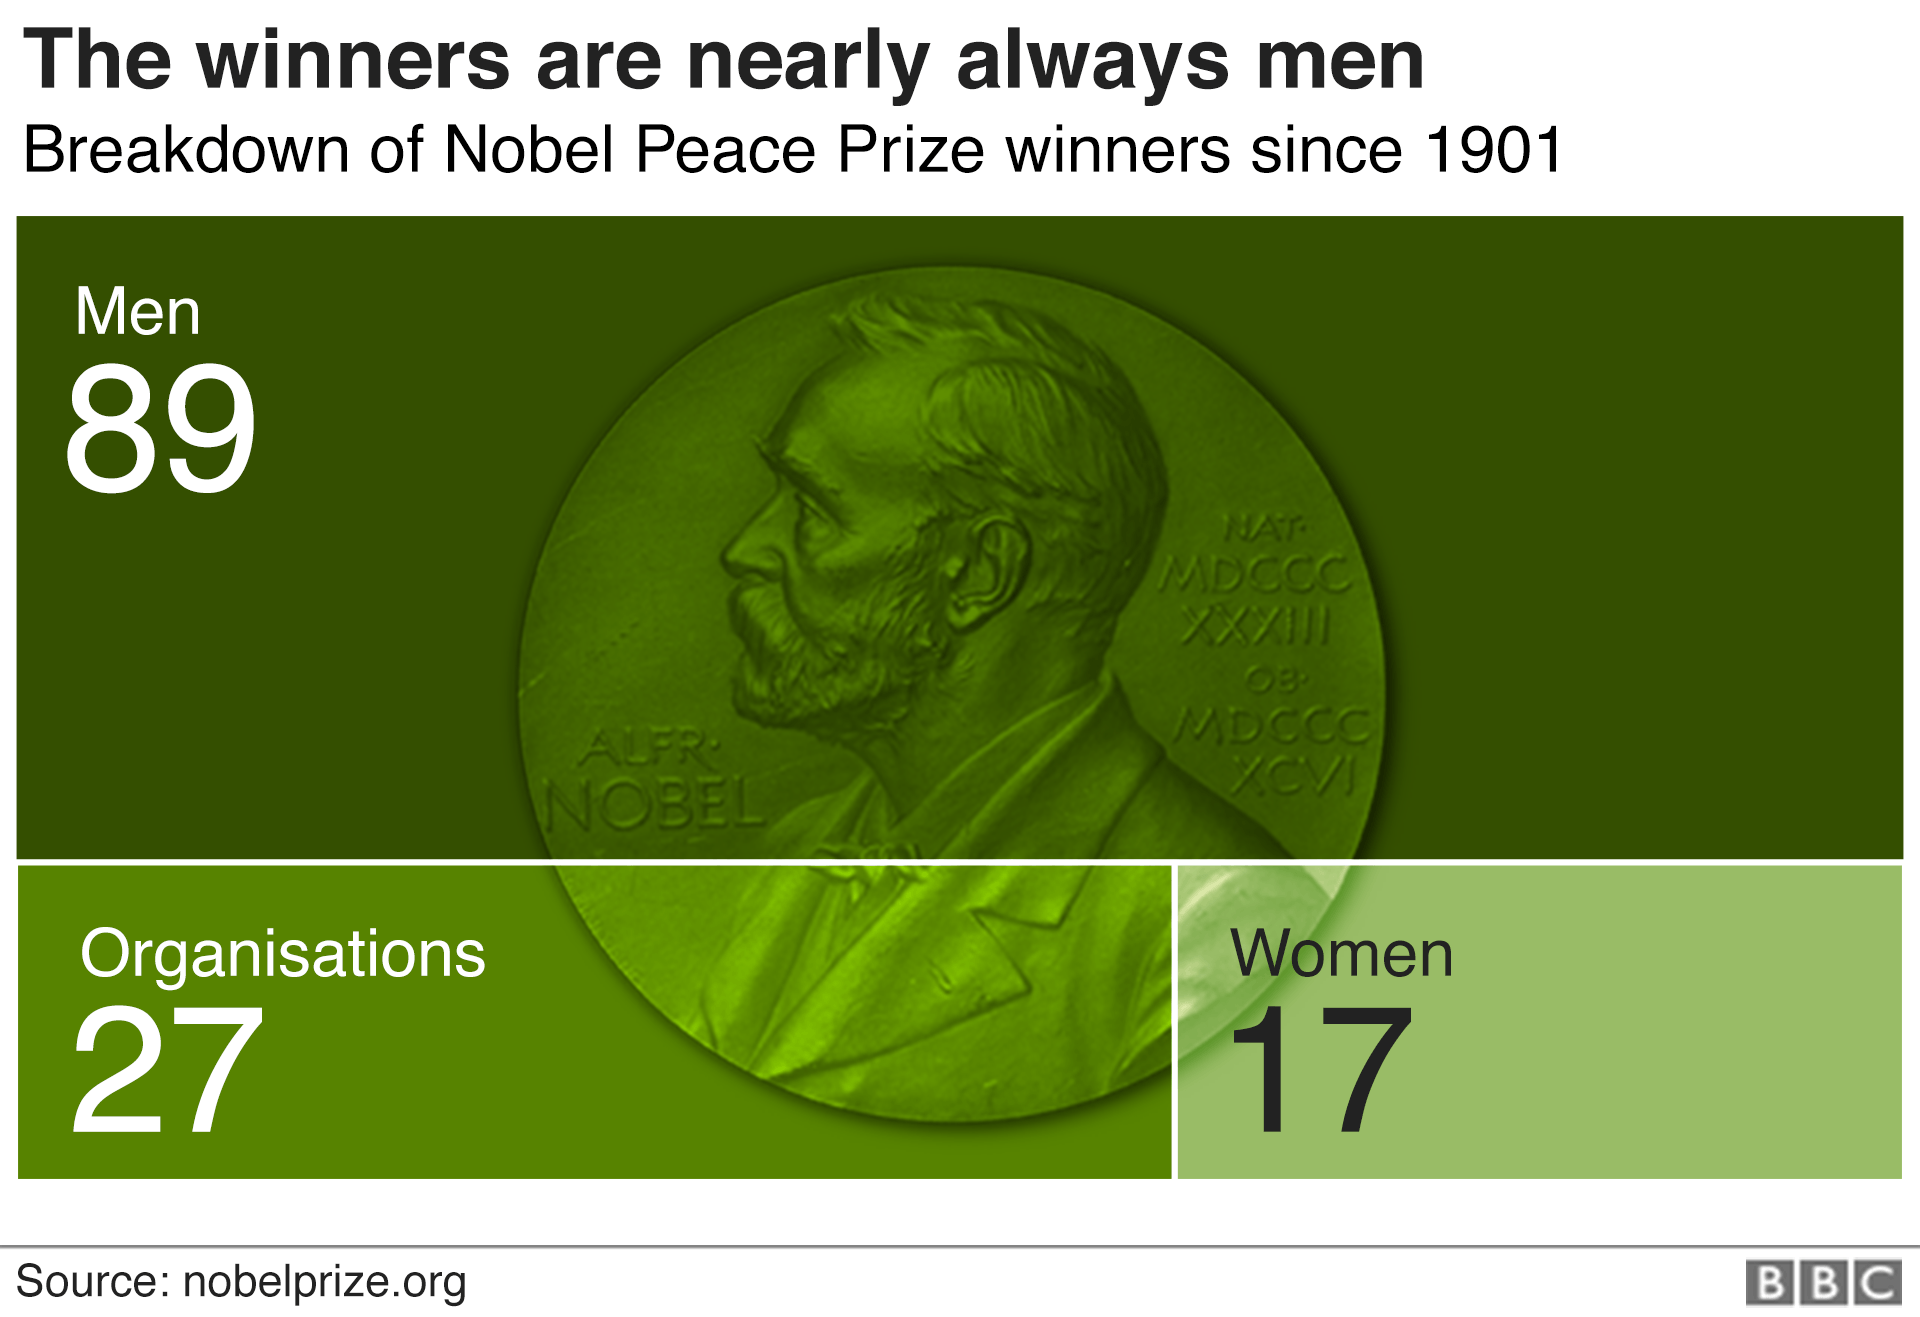 The winners of the Nobel Peace Prize since 1901